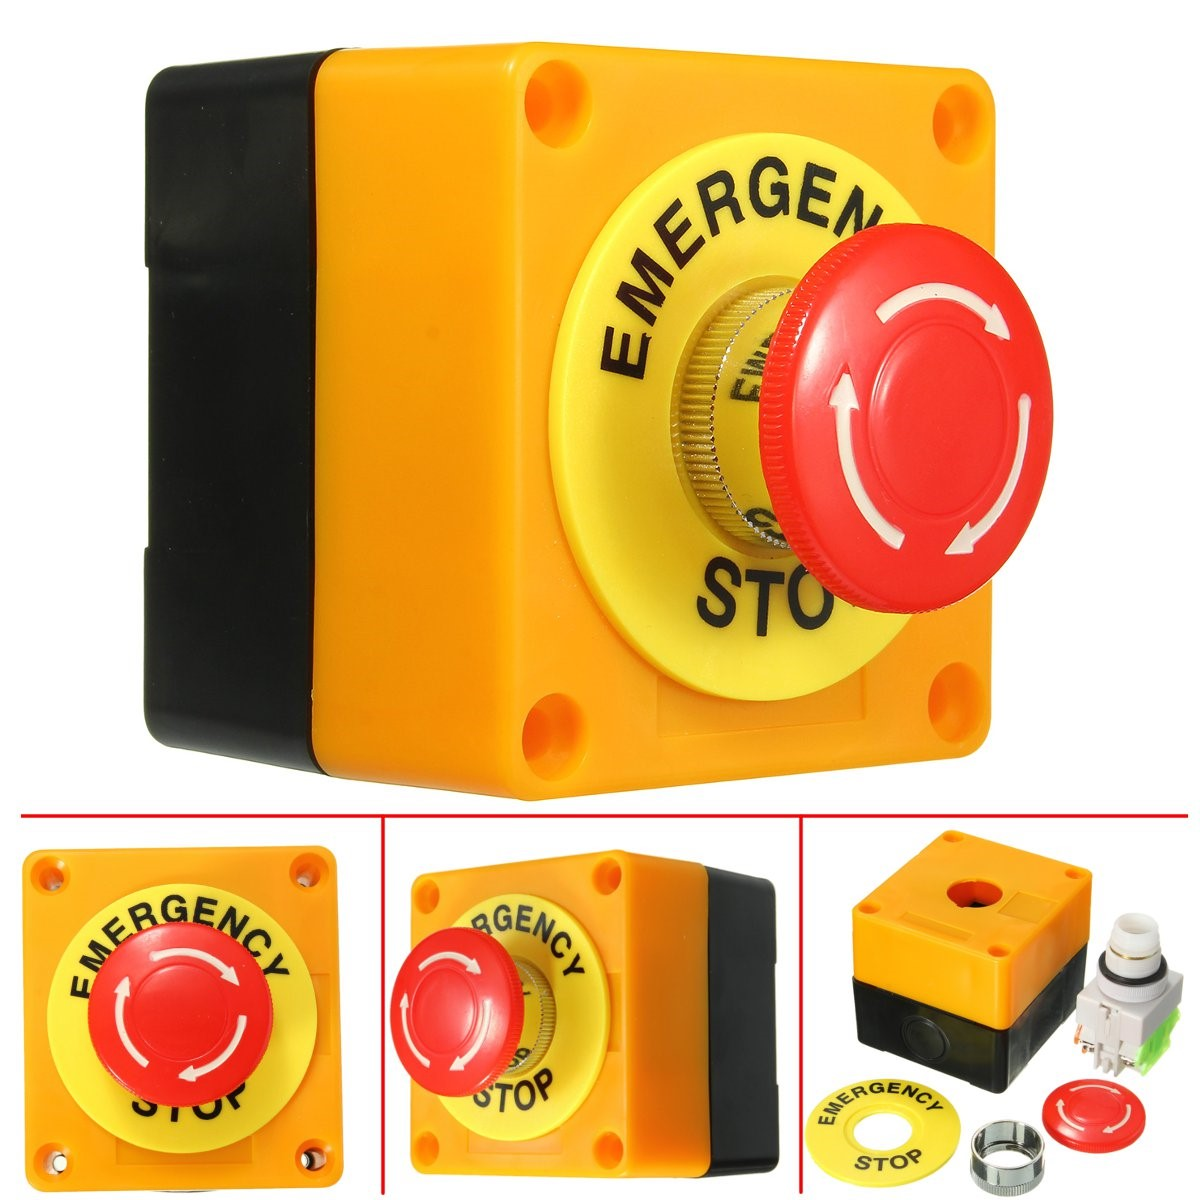 Best Price1 NO 1 NC 10A 660V Emergency Stop Push Button Switch Waterproof Self Locking Explosion-proof anti-corrosion waterproof 10a 250v 380v on off waterproof push button switch for cutting machine drill switch plastic motor best price